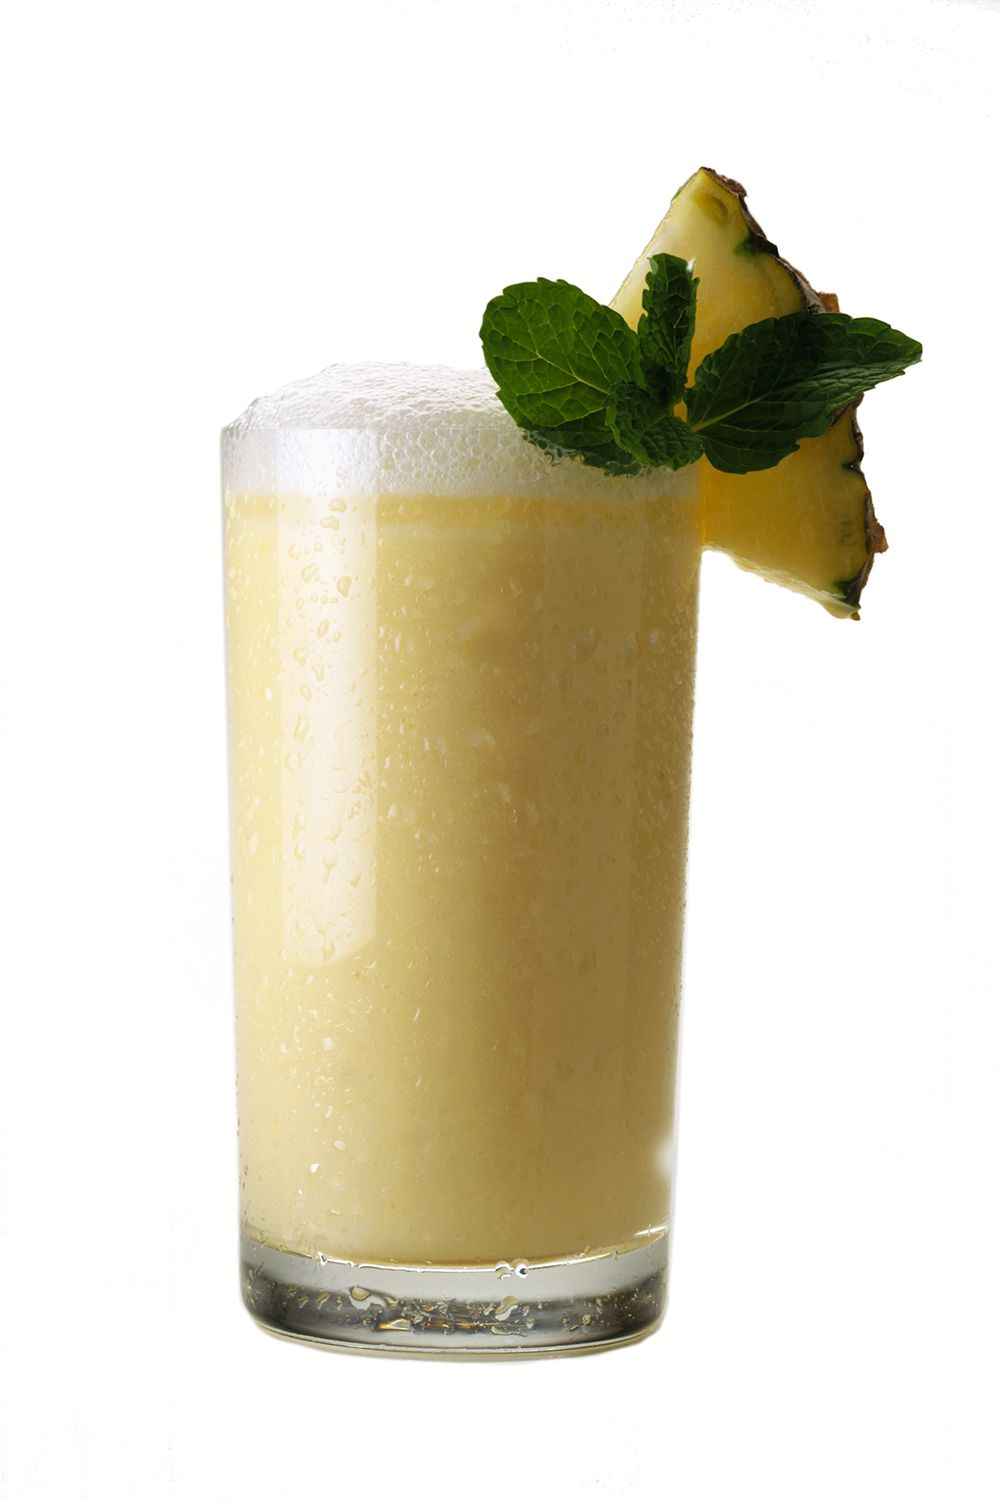 "<p><strong>Ingredients: </strong></p><p>4  1.5 inch Pineapple chunks</p><p>2  Mint leaves</p><p>1 oz. Simple Syrup</p><p>2 oz. Leblon Cachaça</p><p><u><a href=""http://liquor.com/brands/leblon-cachaca/""></a></u><strong>Directions:</strong></p><p>Muddle the pineapple, mint and sugar in a shaker. Fill the shaker with ice and add Leblon Cachaça. Shake vigorously. Serve in a rocks glass. Garnish with a pineapple wedge.</p><p><em>From <a href=""http://www.liquor.com/recipes/the-pineapple-mint-caipirinha/#gs.bNy0LOU"">Leblon Cachaca</a>. </em></p>"